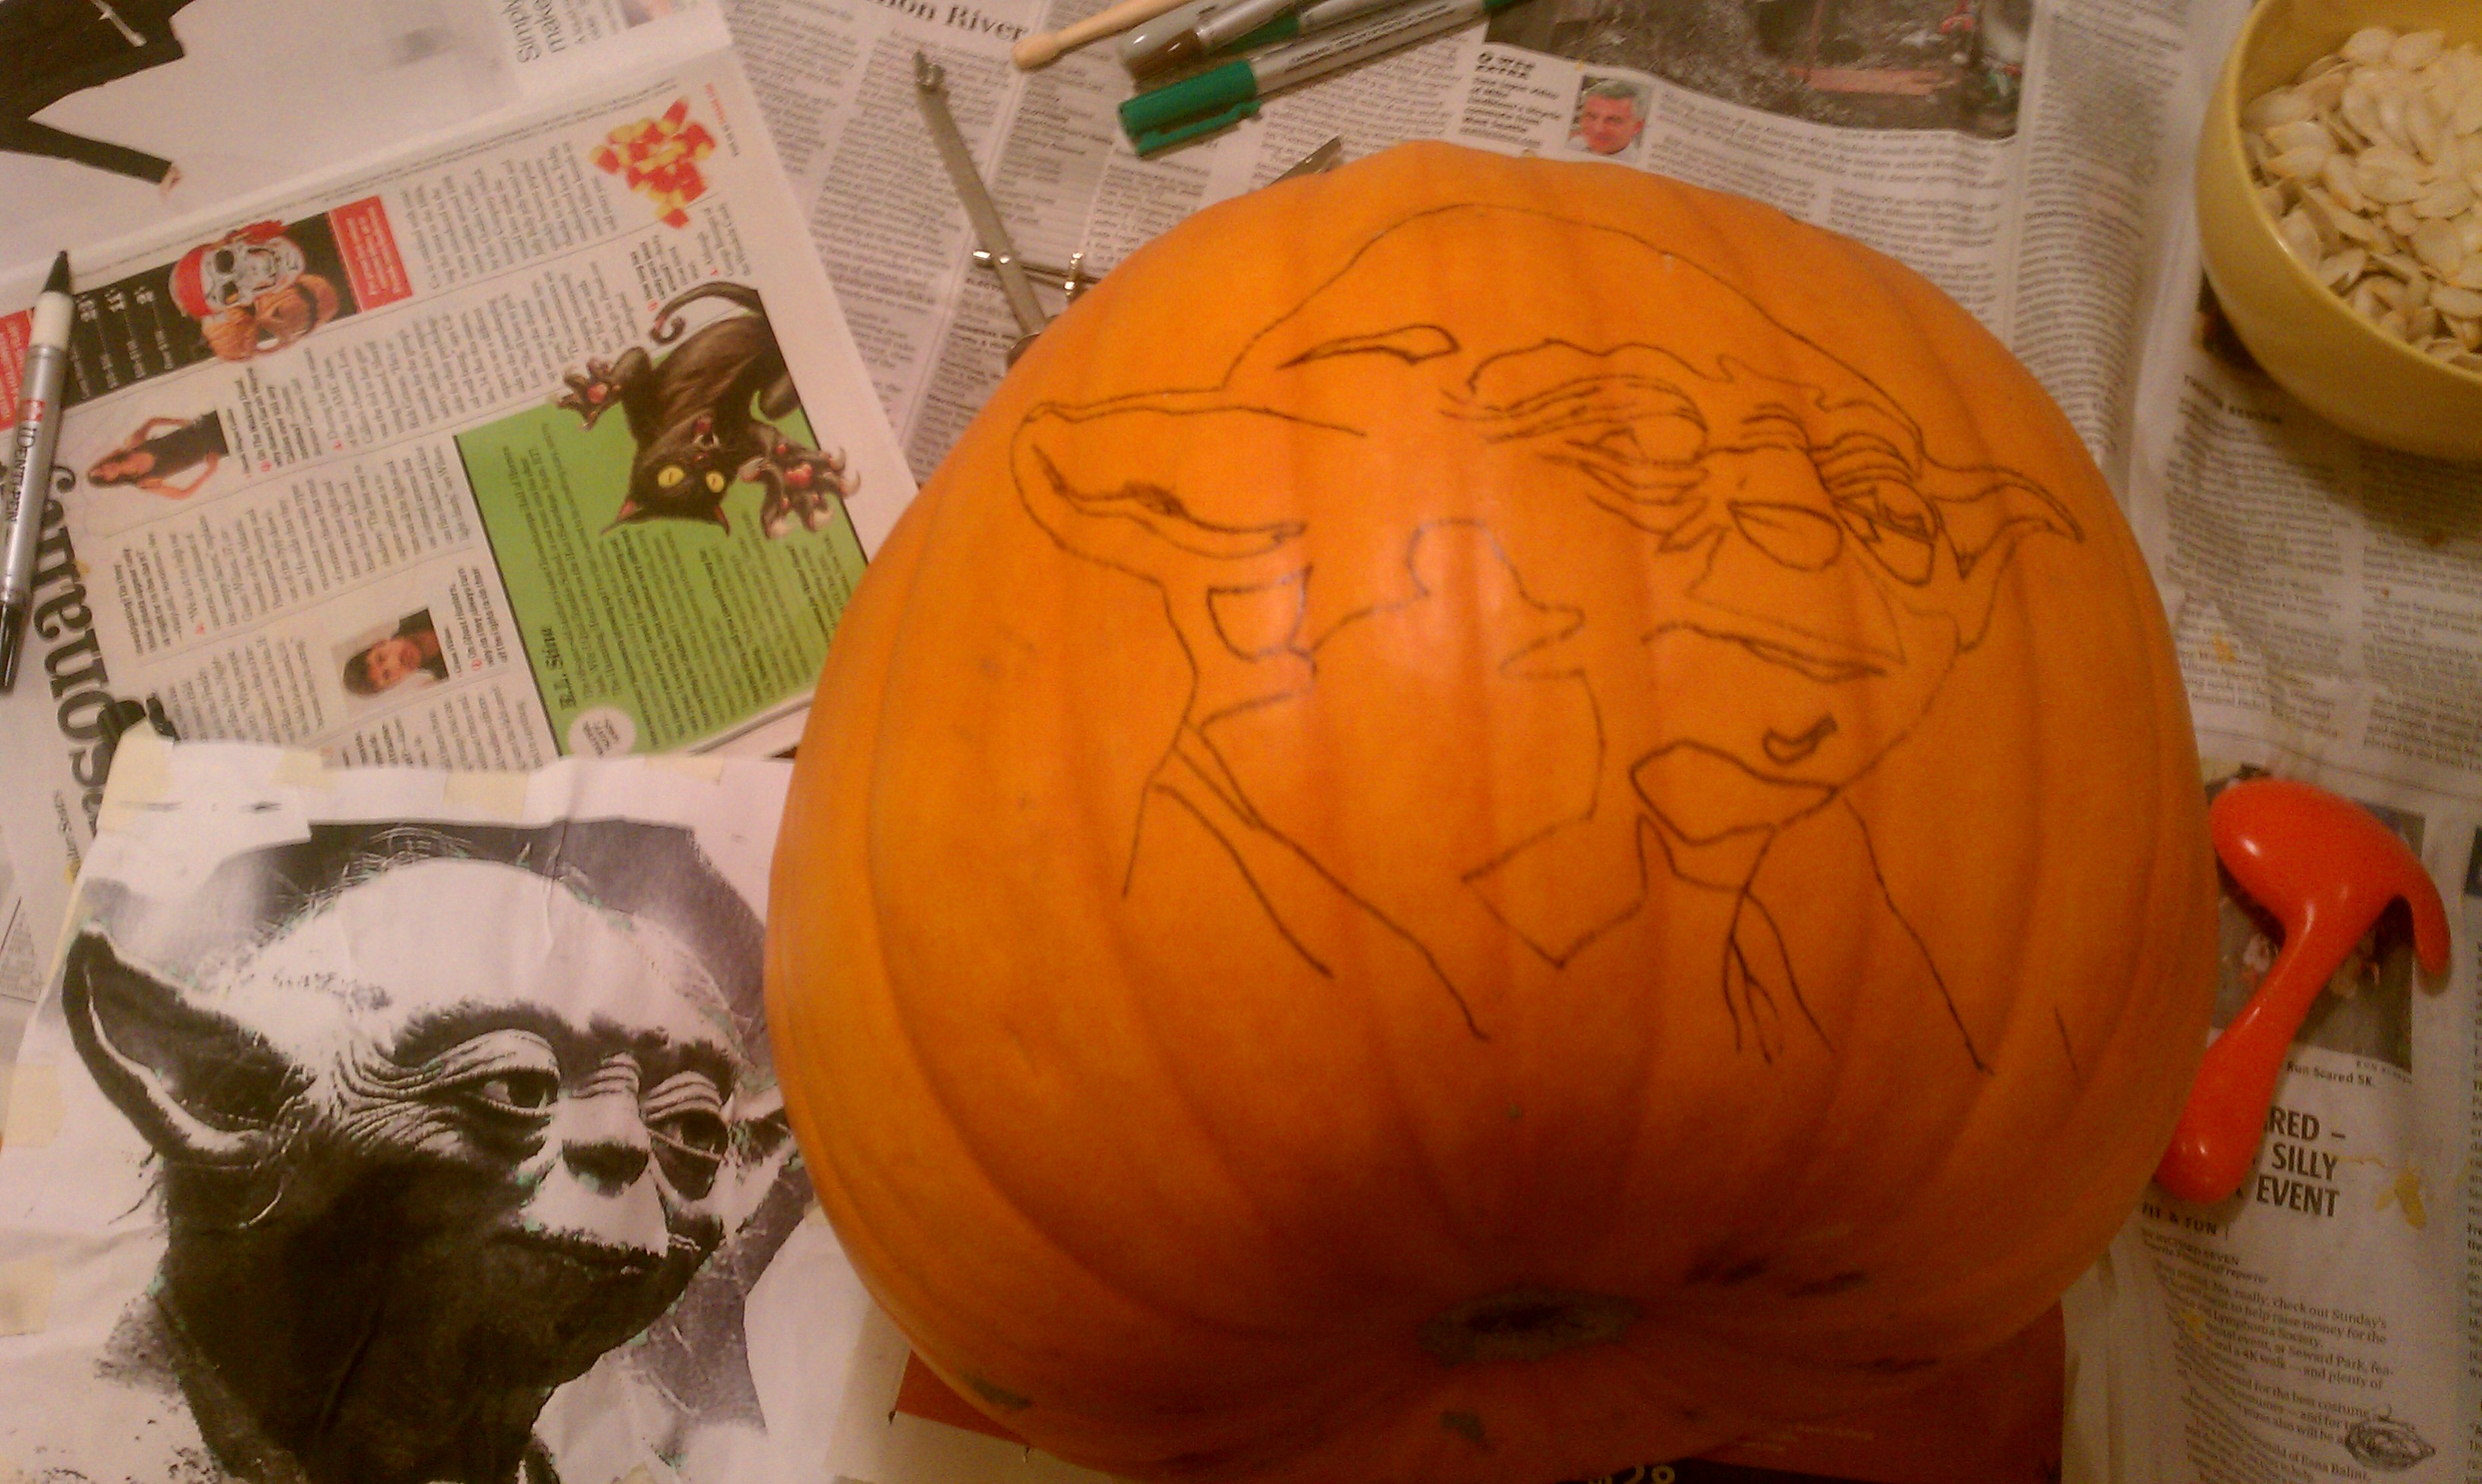 Picture of Transpumpfer the Image Onto the Pumpkin